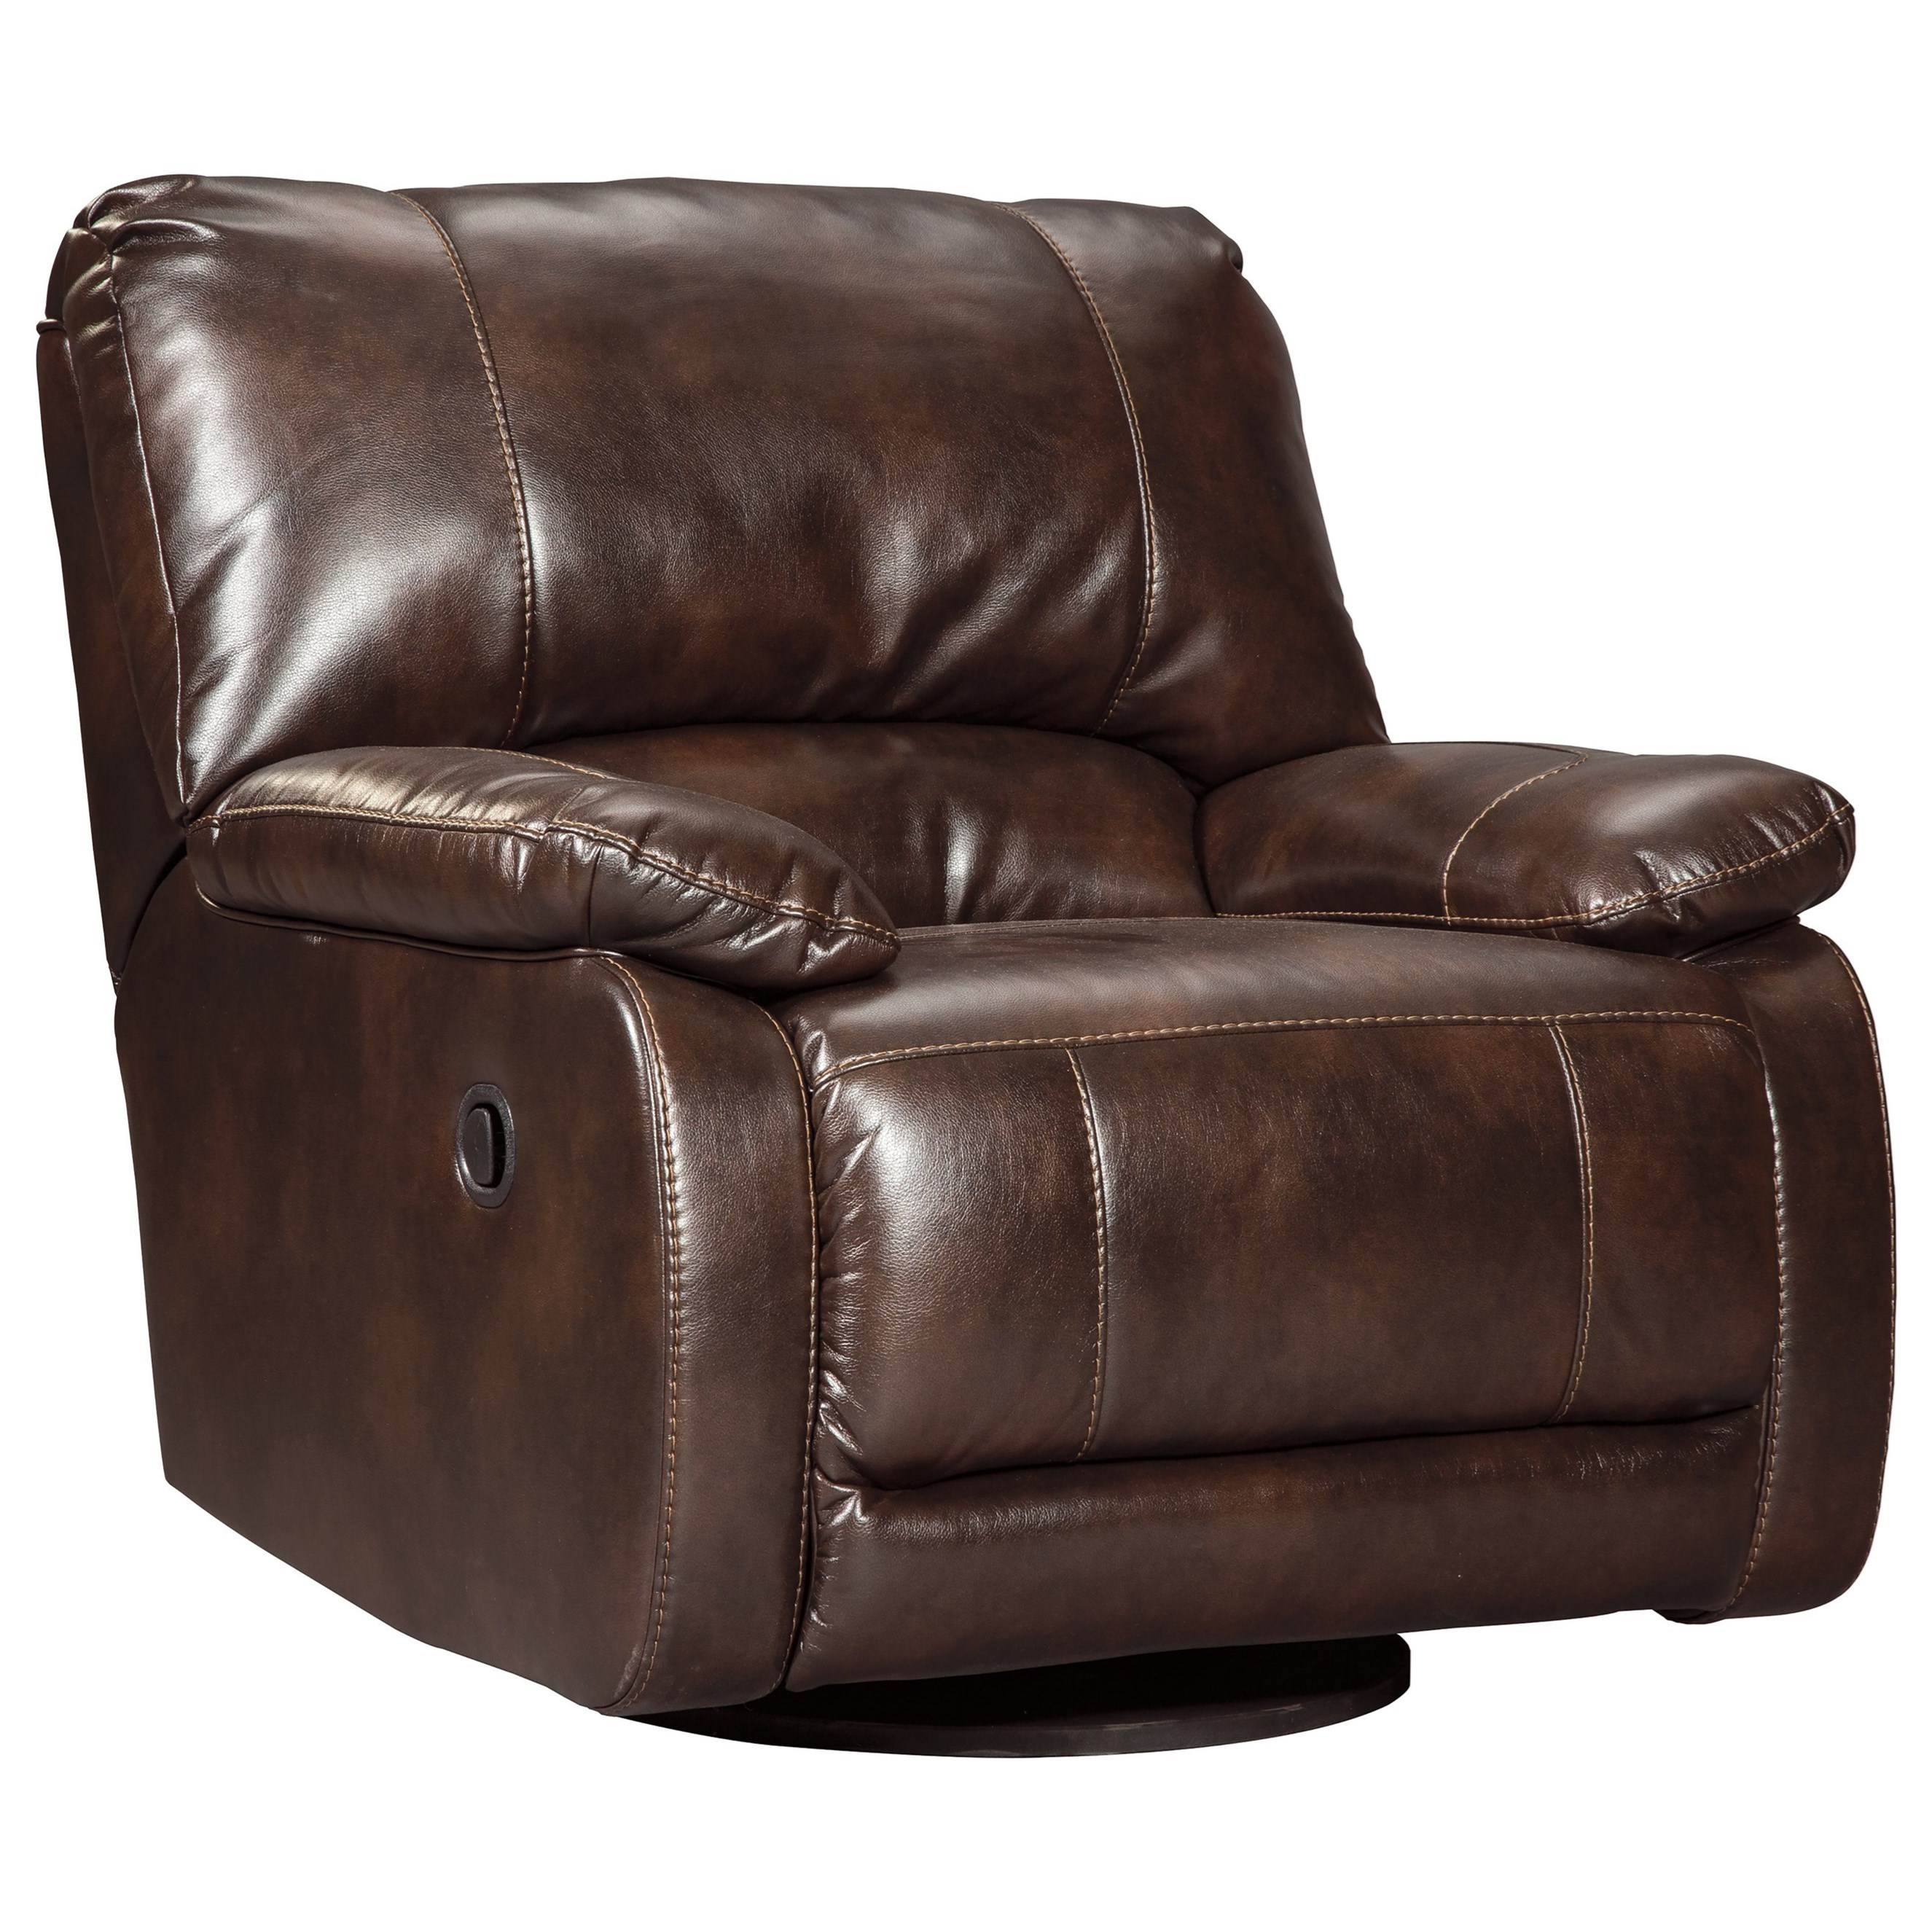 Signature Design By Ashley Hallettsville 3530061 Casual Contemporary Swivel Glider Recliner